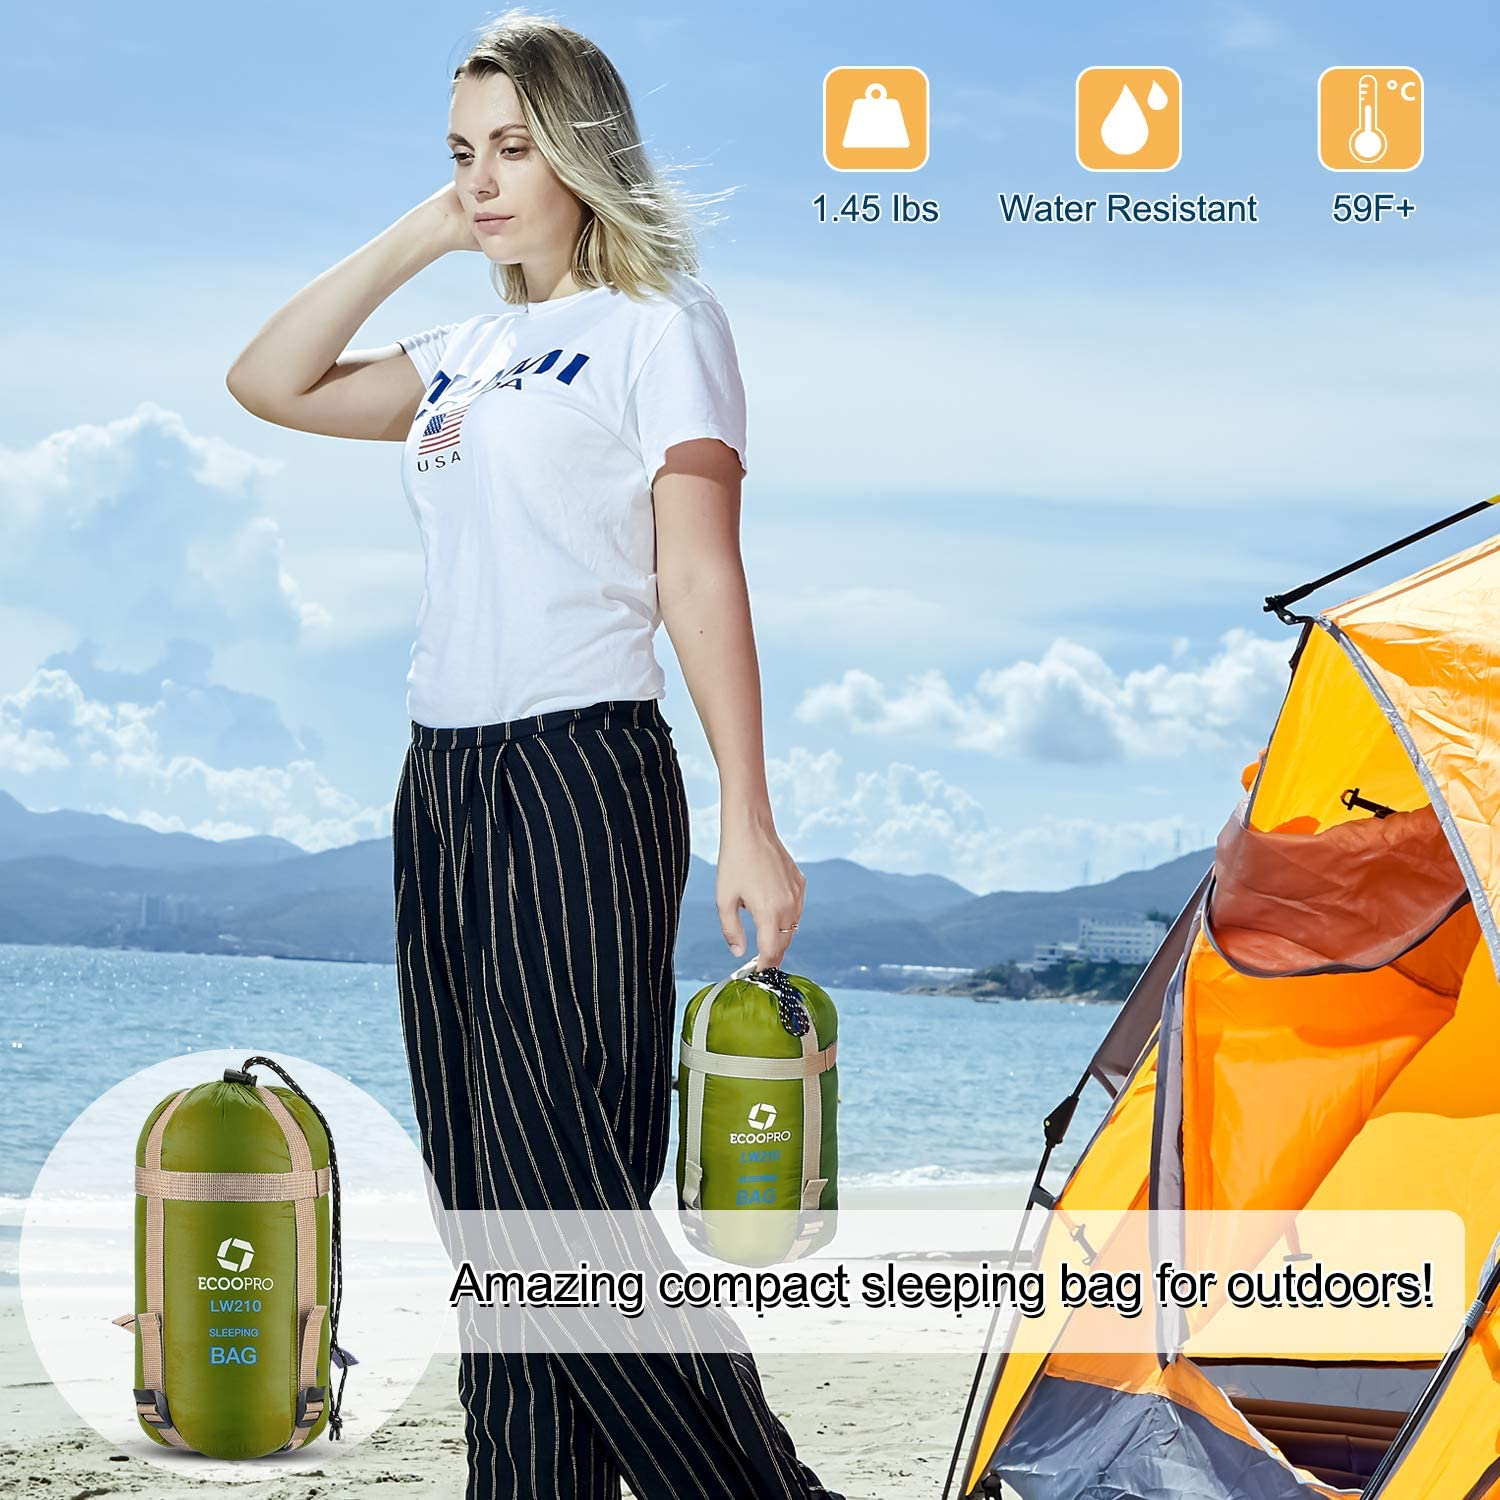 Portable ECOOPRO Warm Weather Sleeping Bag Waterproof Great for Outdoor Camping Comfort with Compression Sack Backpacking /& Hiking-83 L x 30 W Fits Adults Compact Lightweight